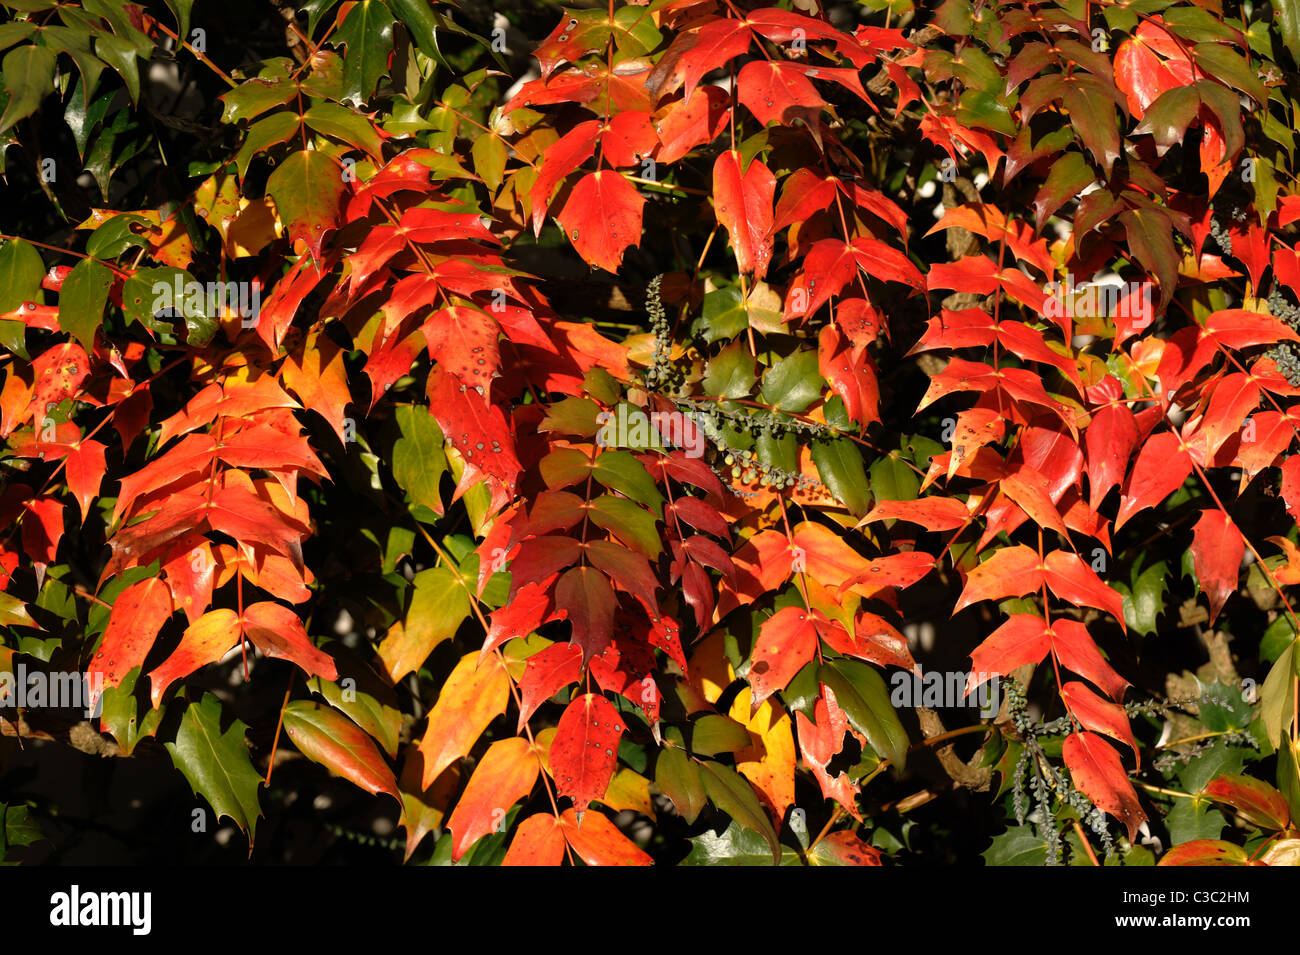 Red dying leaves on a mahonia shrub shortly before flowering - Stock Image